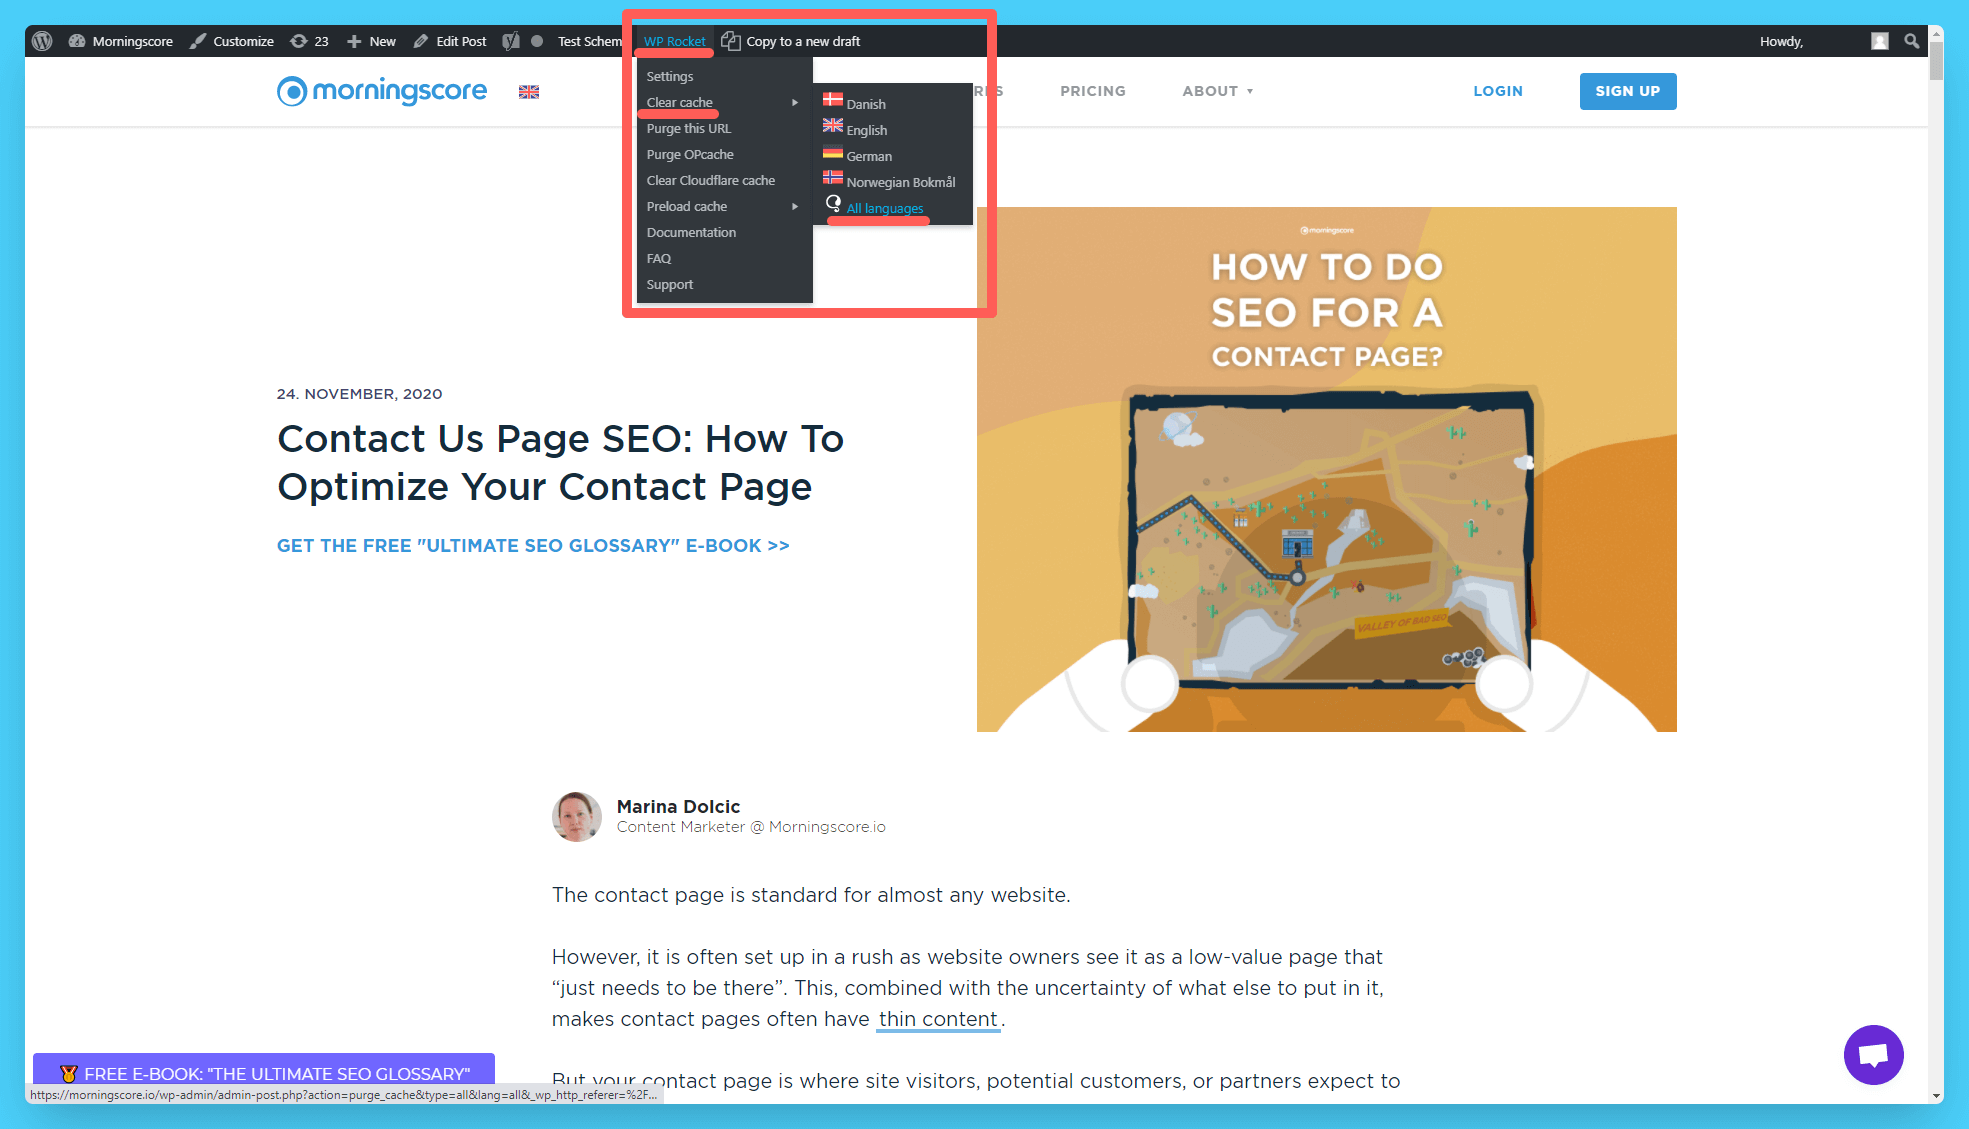 clearing cache to see changes with images